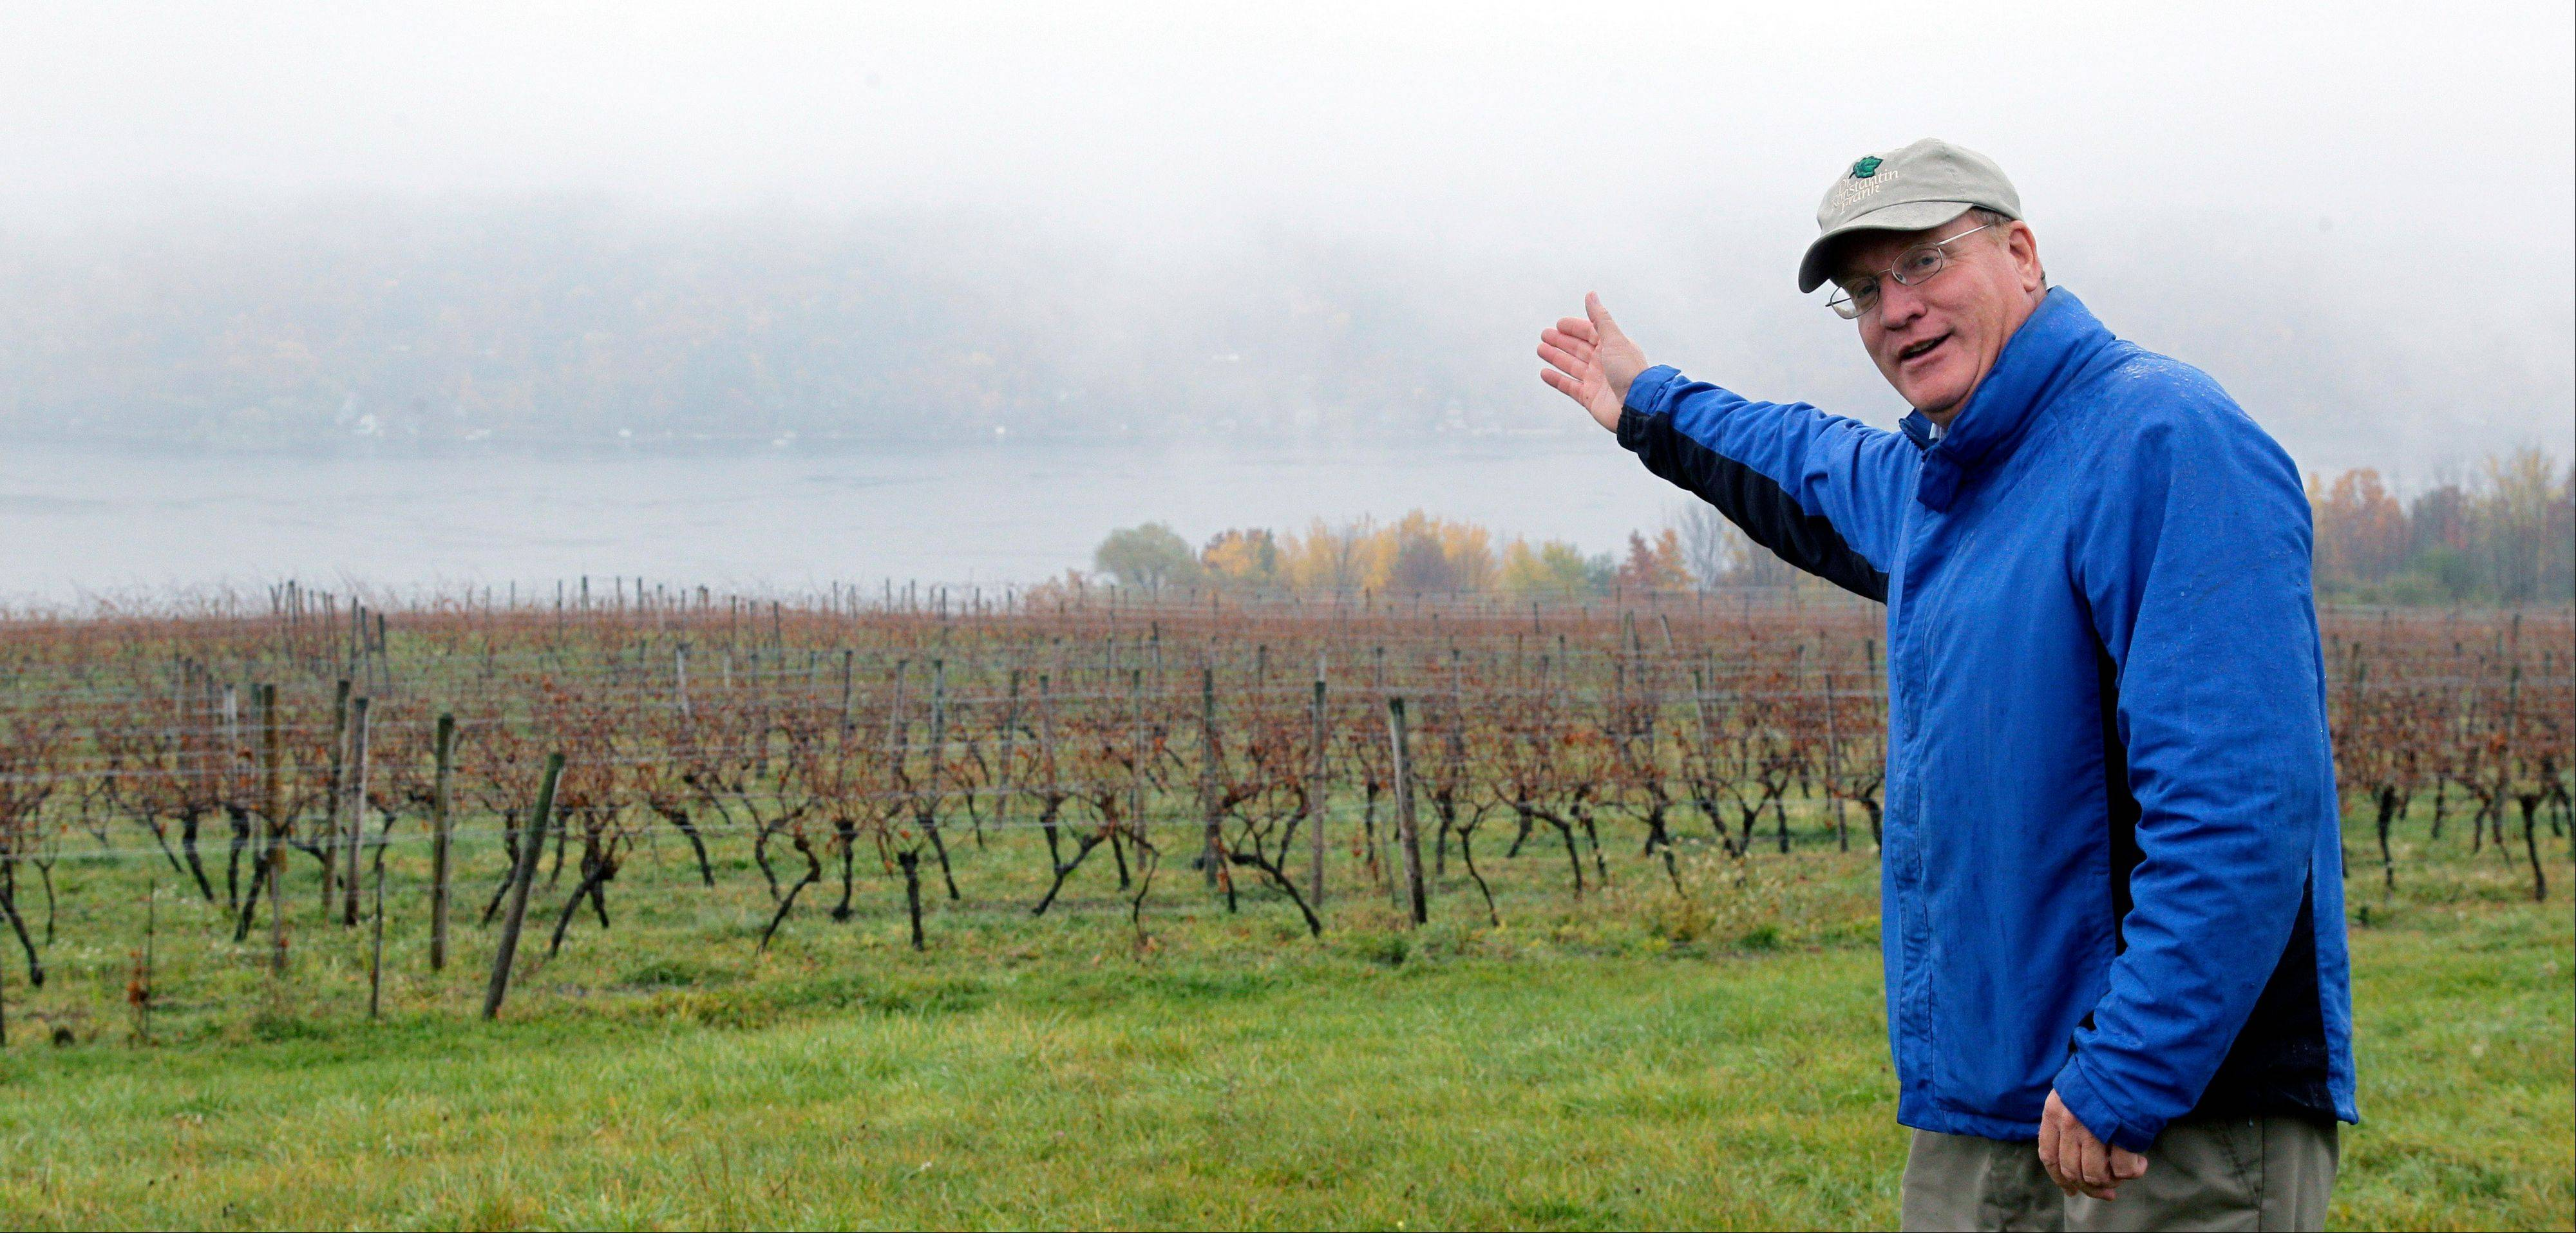 Fred Frank poses Tuesday for a photo in his vineyard at Dr. Konstantin Frank Vinifera Wine Cellars in Hammondsport, N.Y. Frank, grandson of Dr. Konstantin Frank, worries the region's carefully tended reputation is in danger if tourists who make the long trip up from the New York City area and elsewhere have to deal with traffic created by gas drilling.